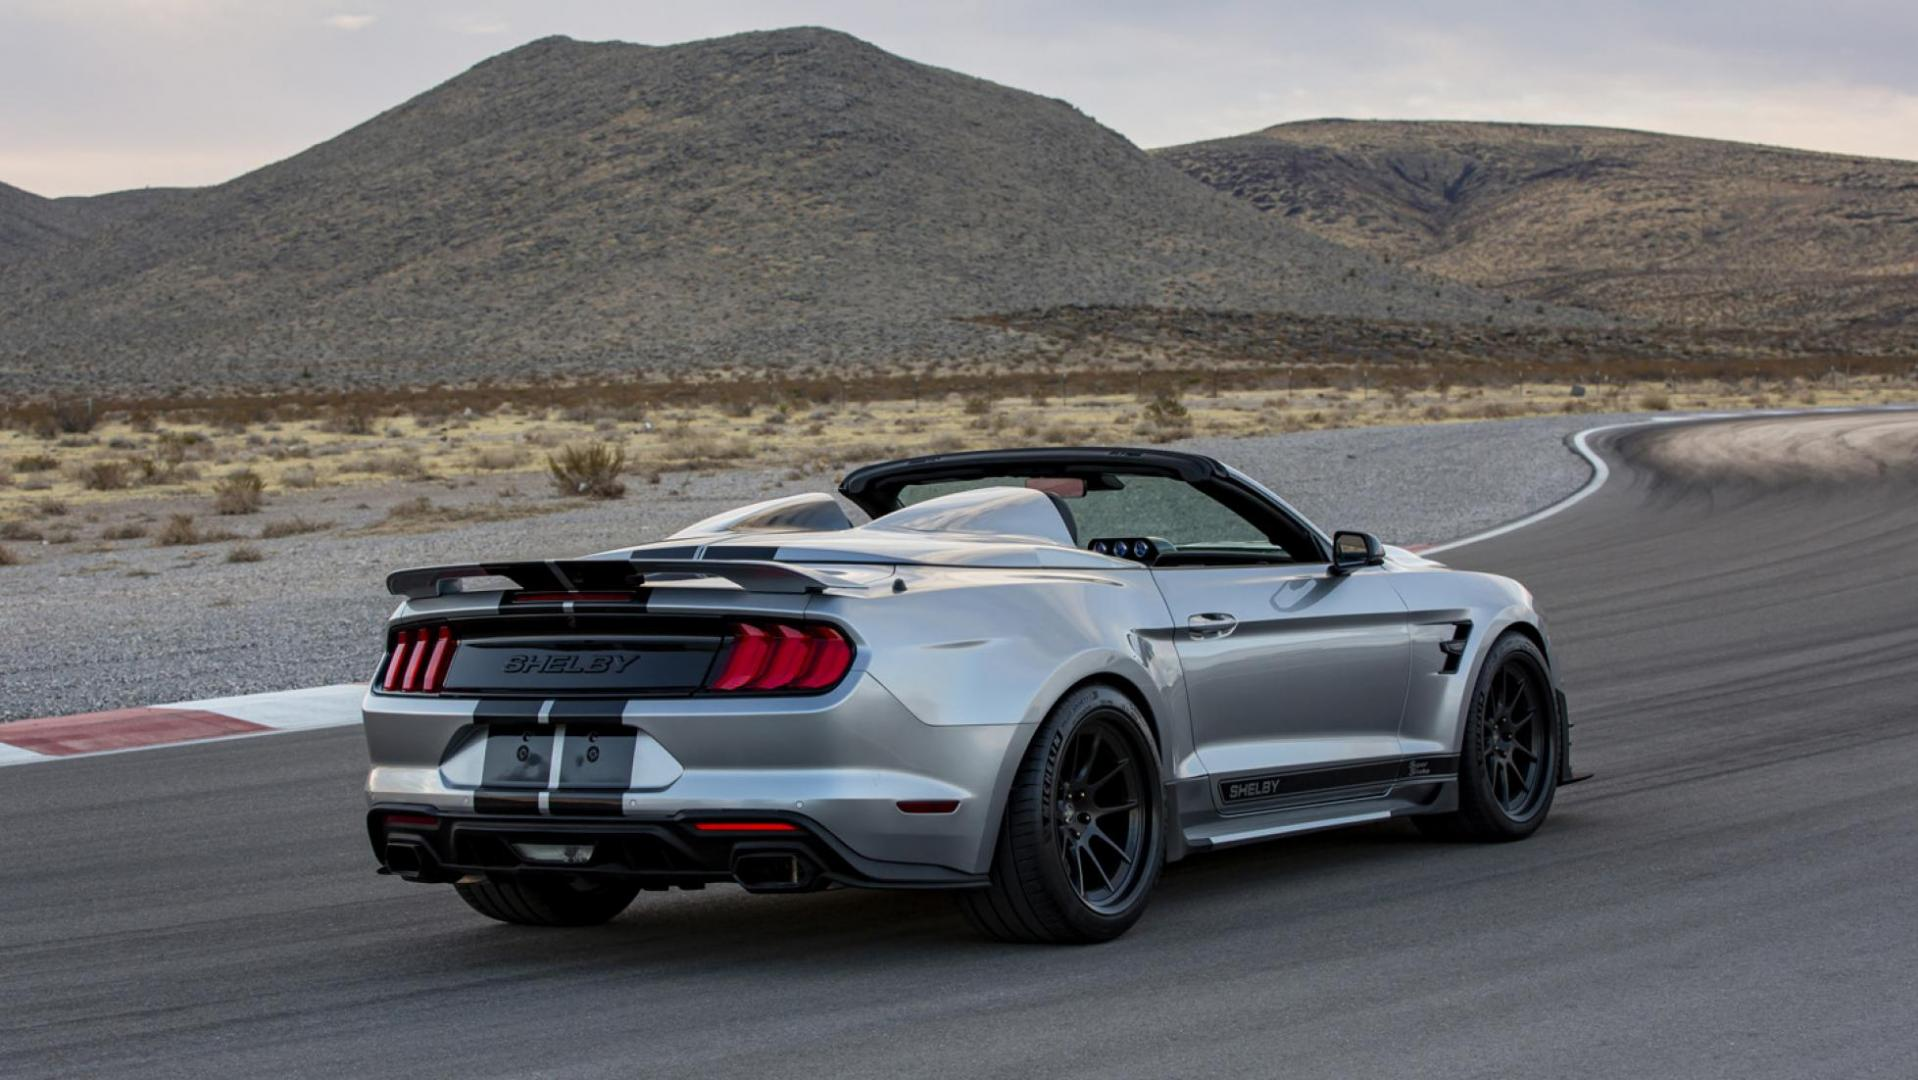 Ford Mustang Shelby Super Snake Speedster (2021)